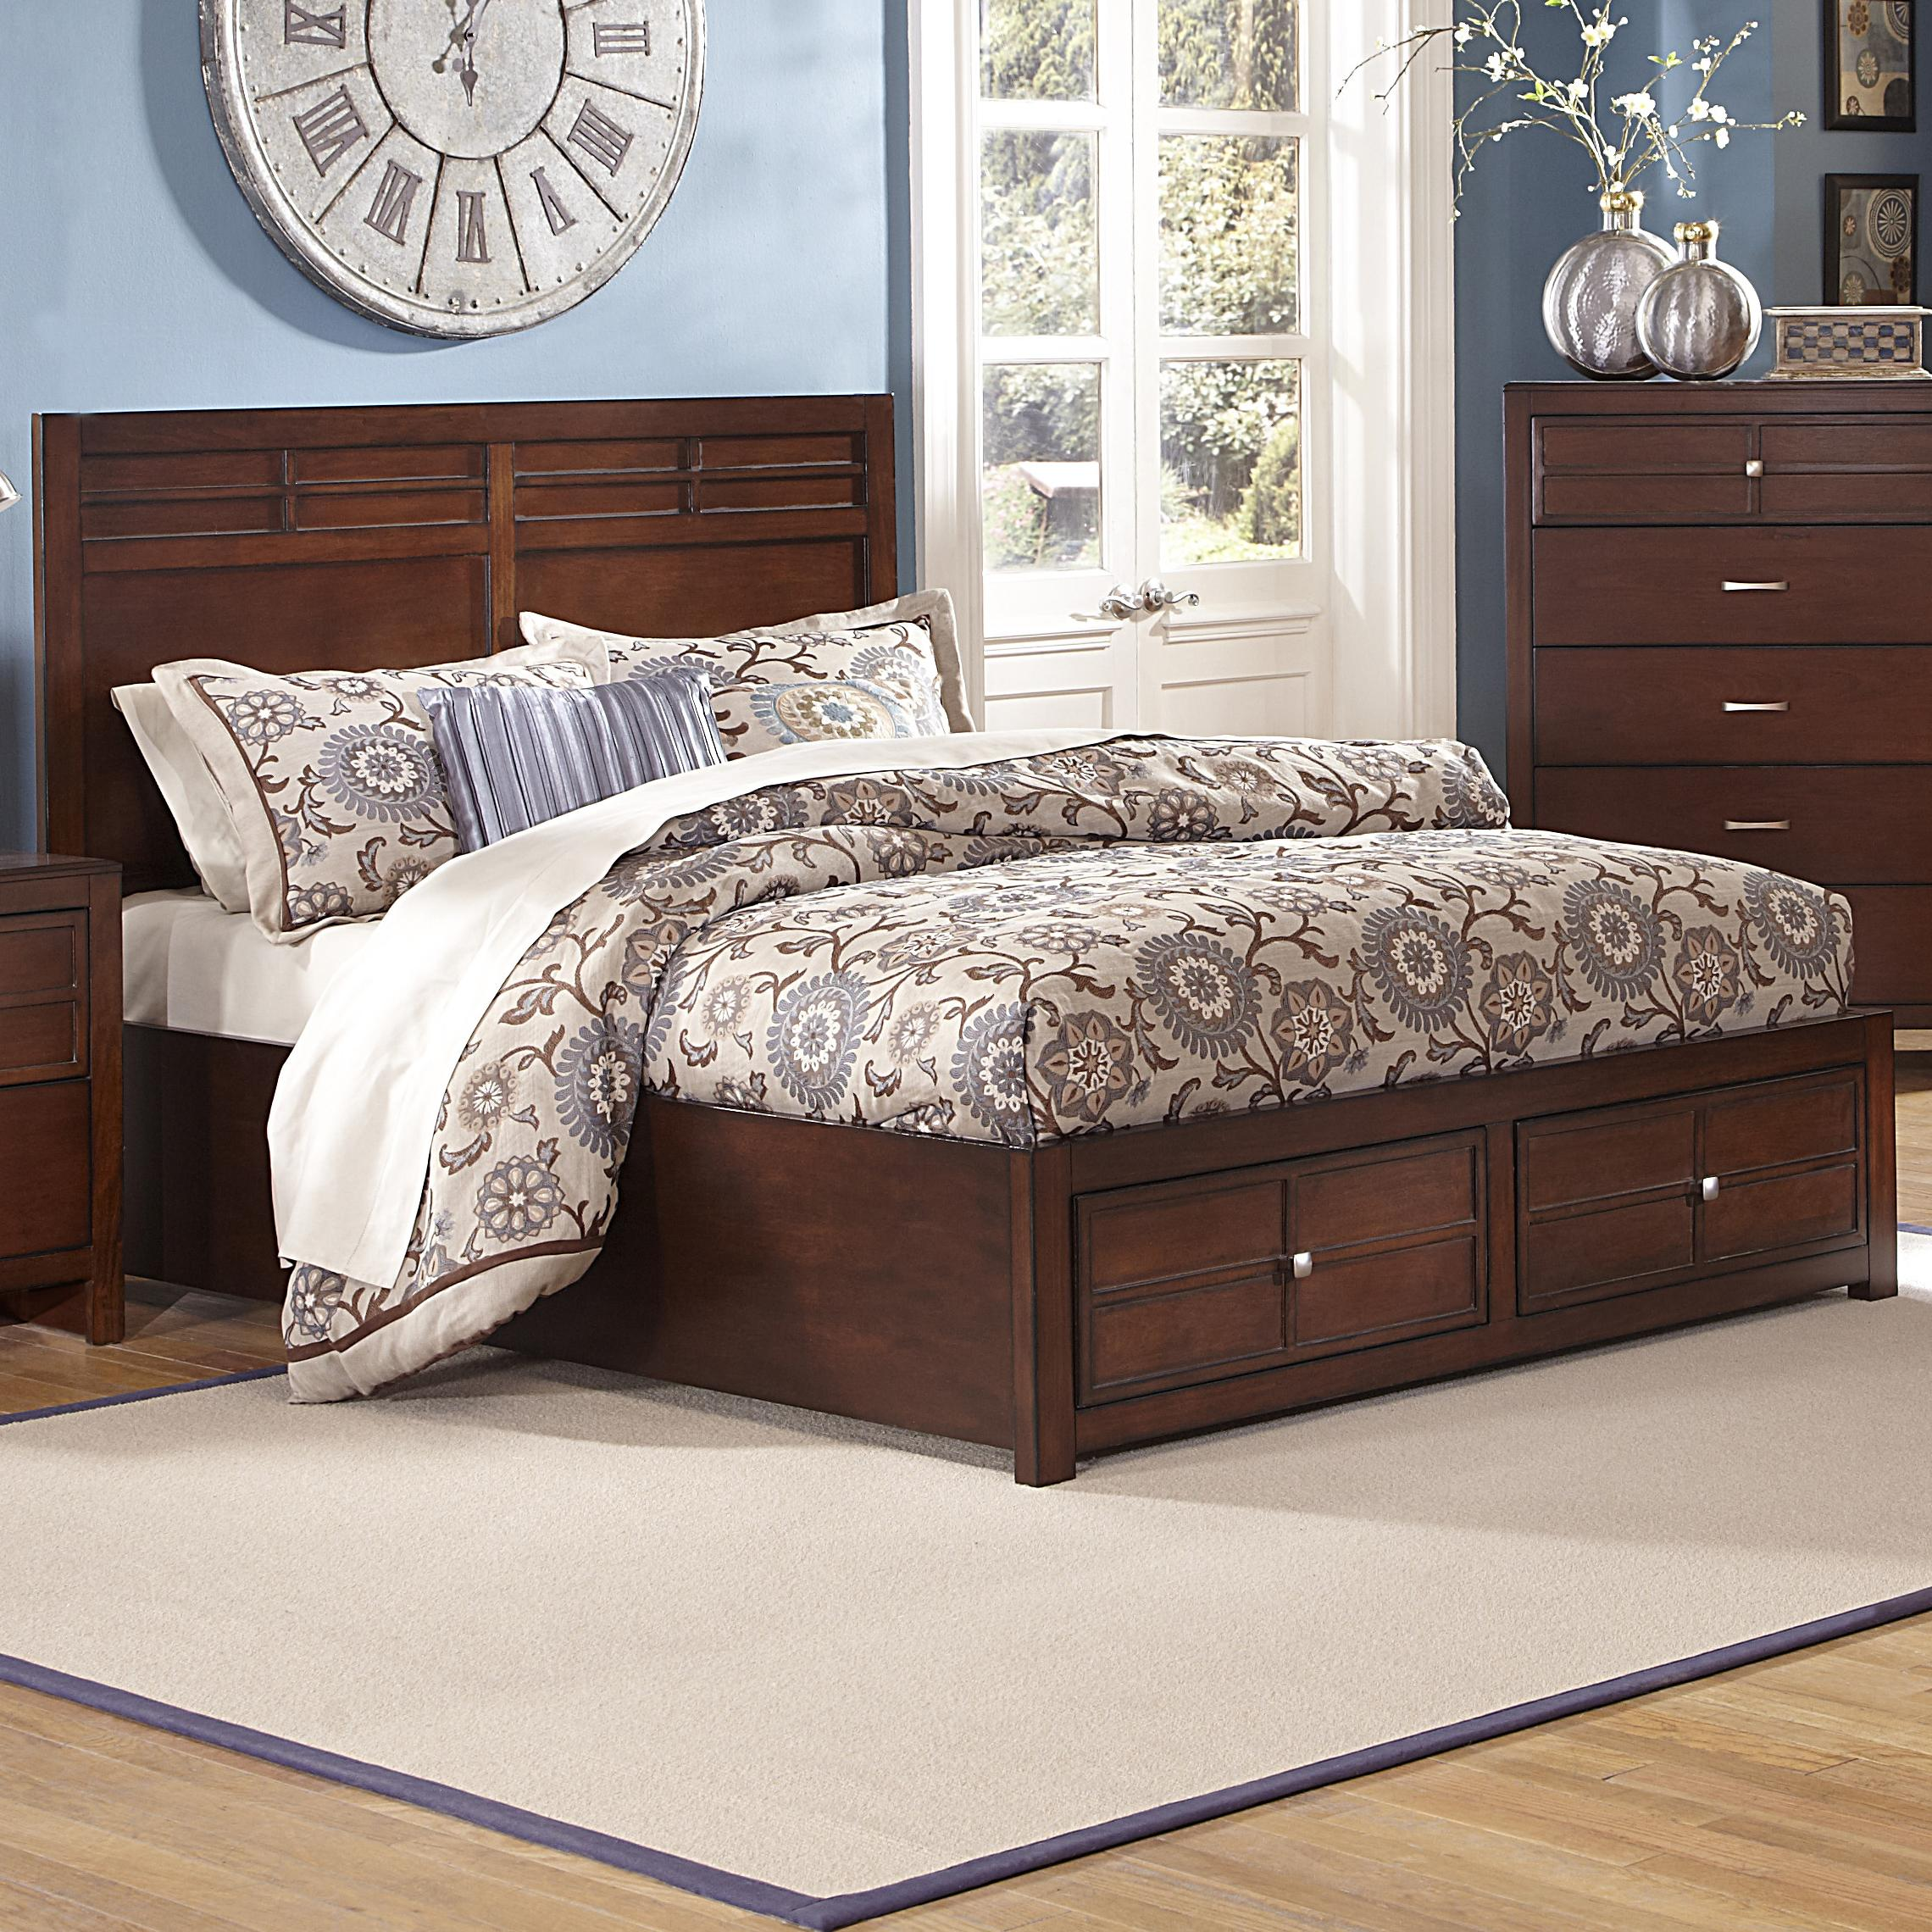 New Classic Kensington King Low Profile Bed With Storage Footboard Michael 39 S Furniture